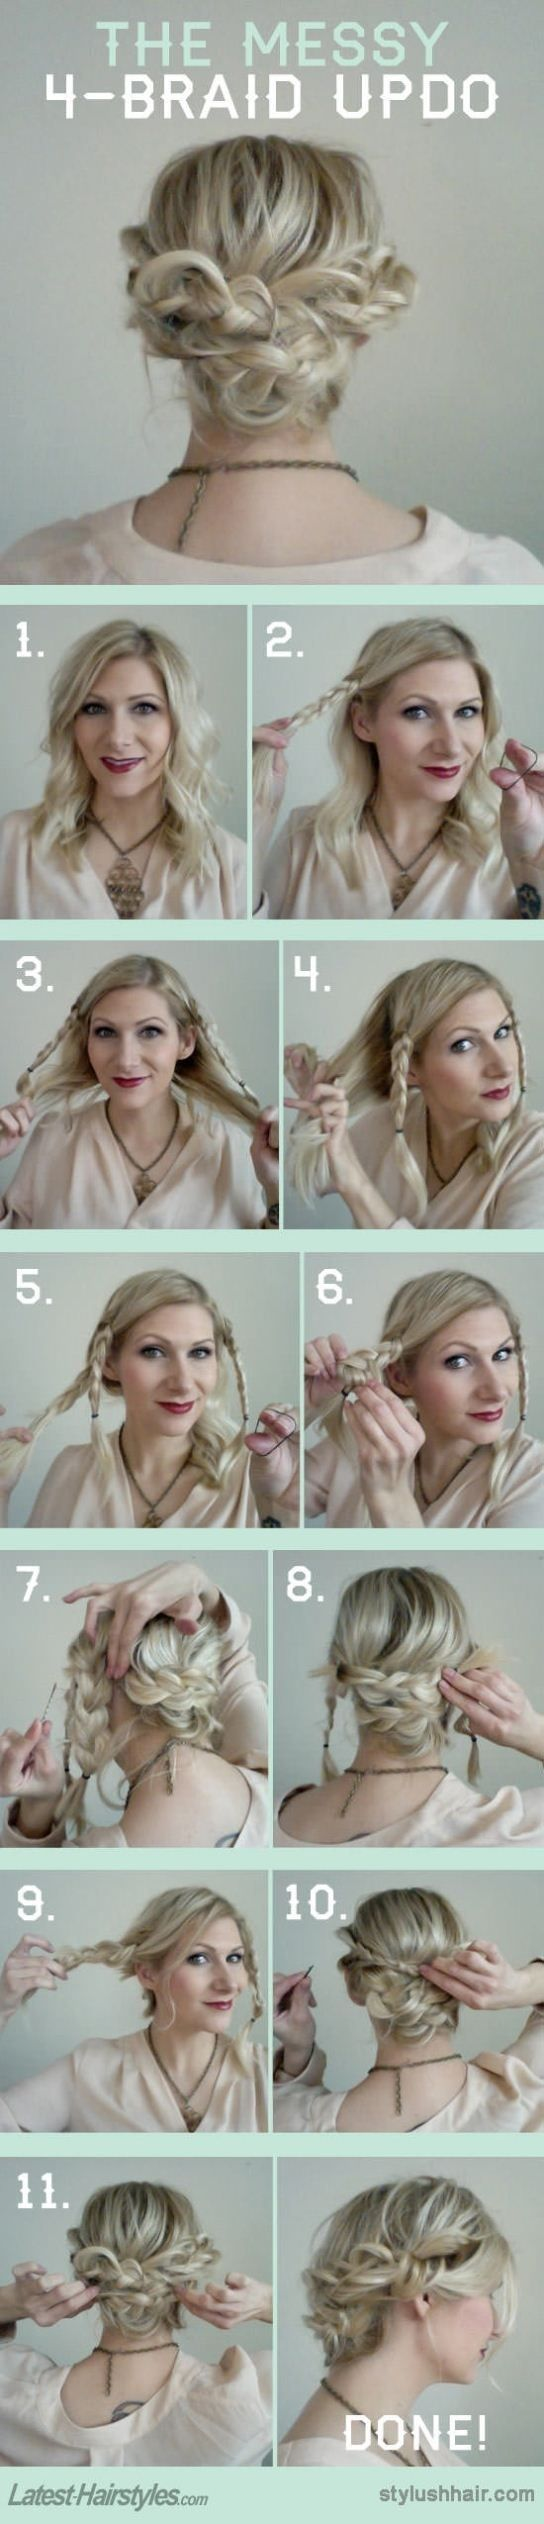 best hair styles images on pinterest haircut styles make up